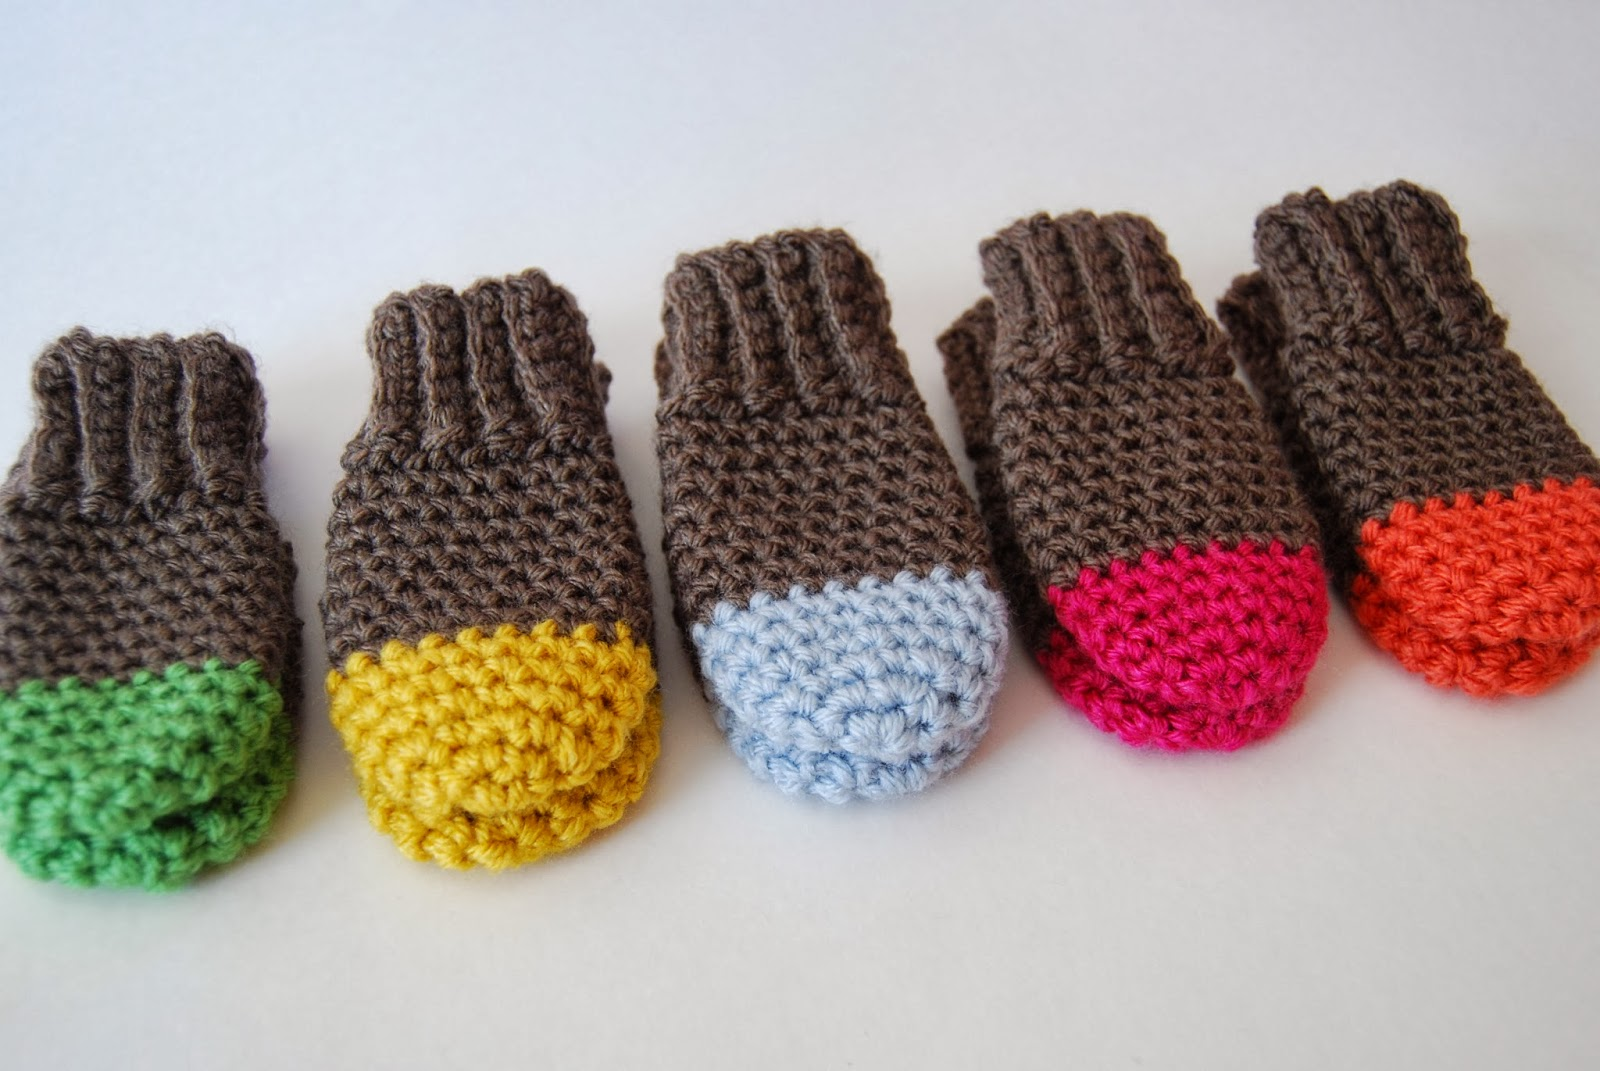 Make crochet baby mittens your favorite crochet